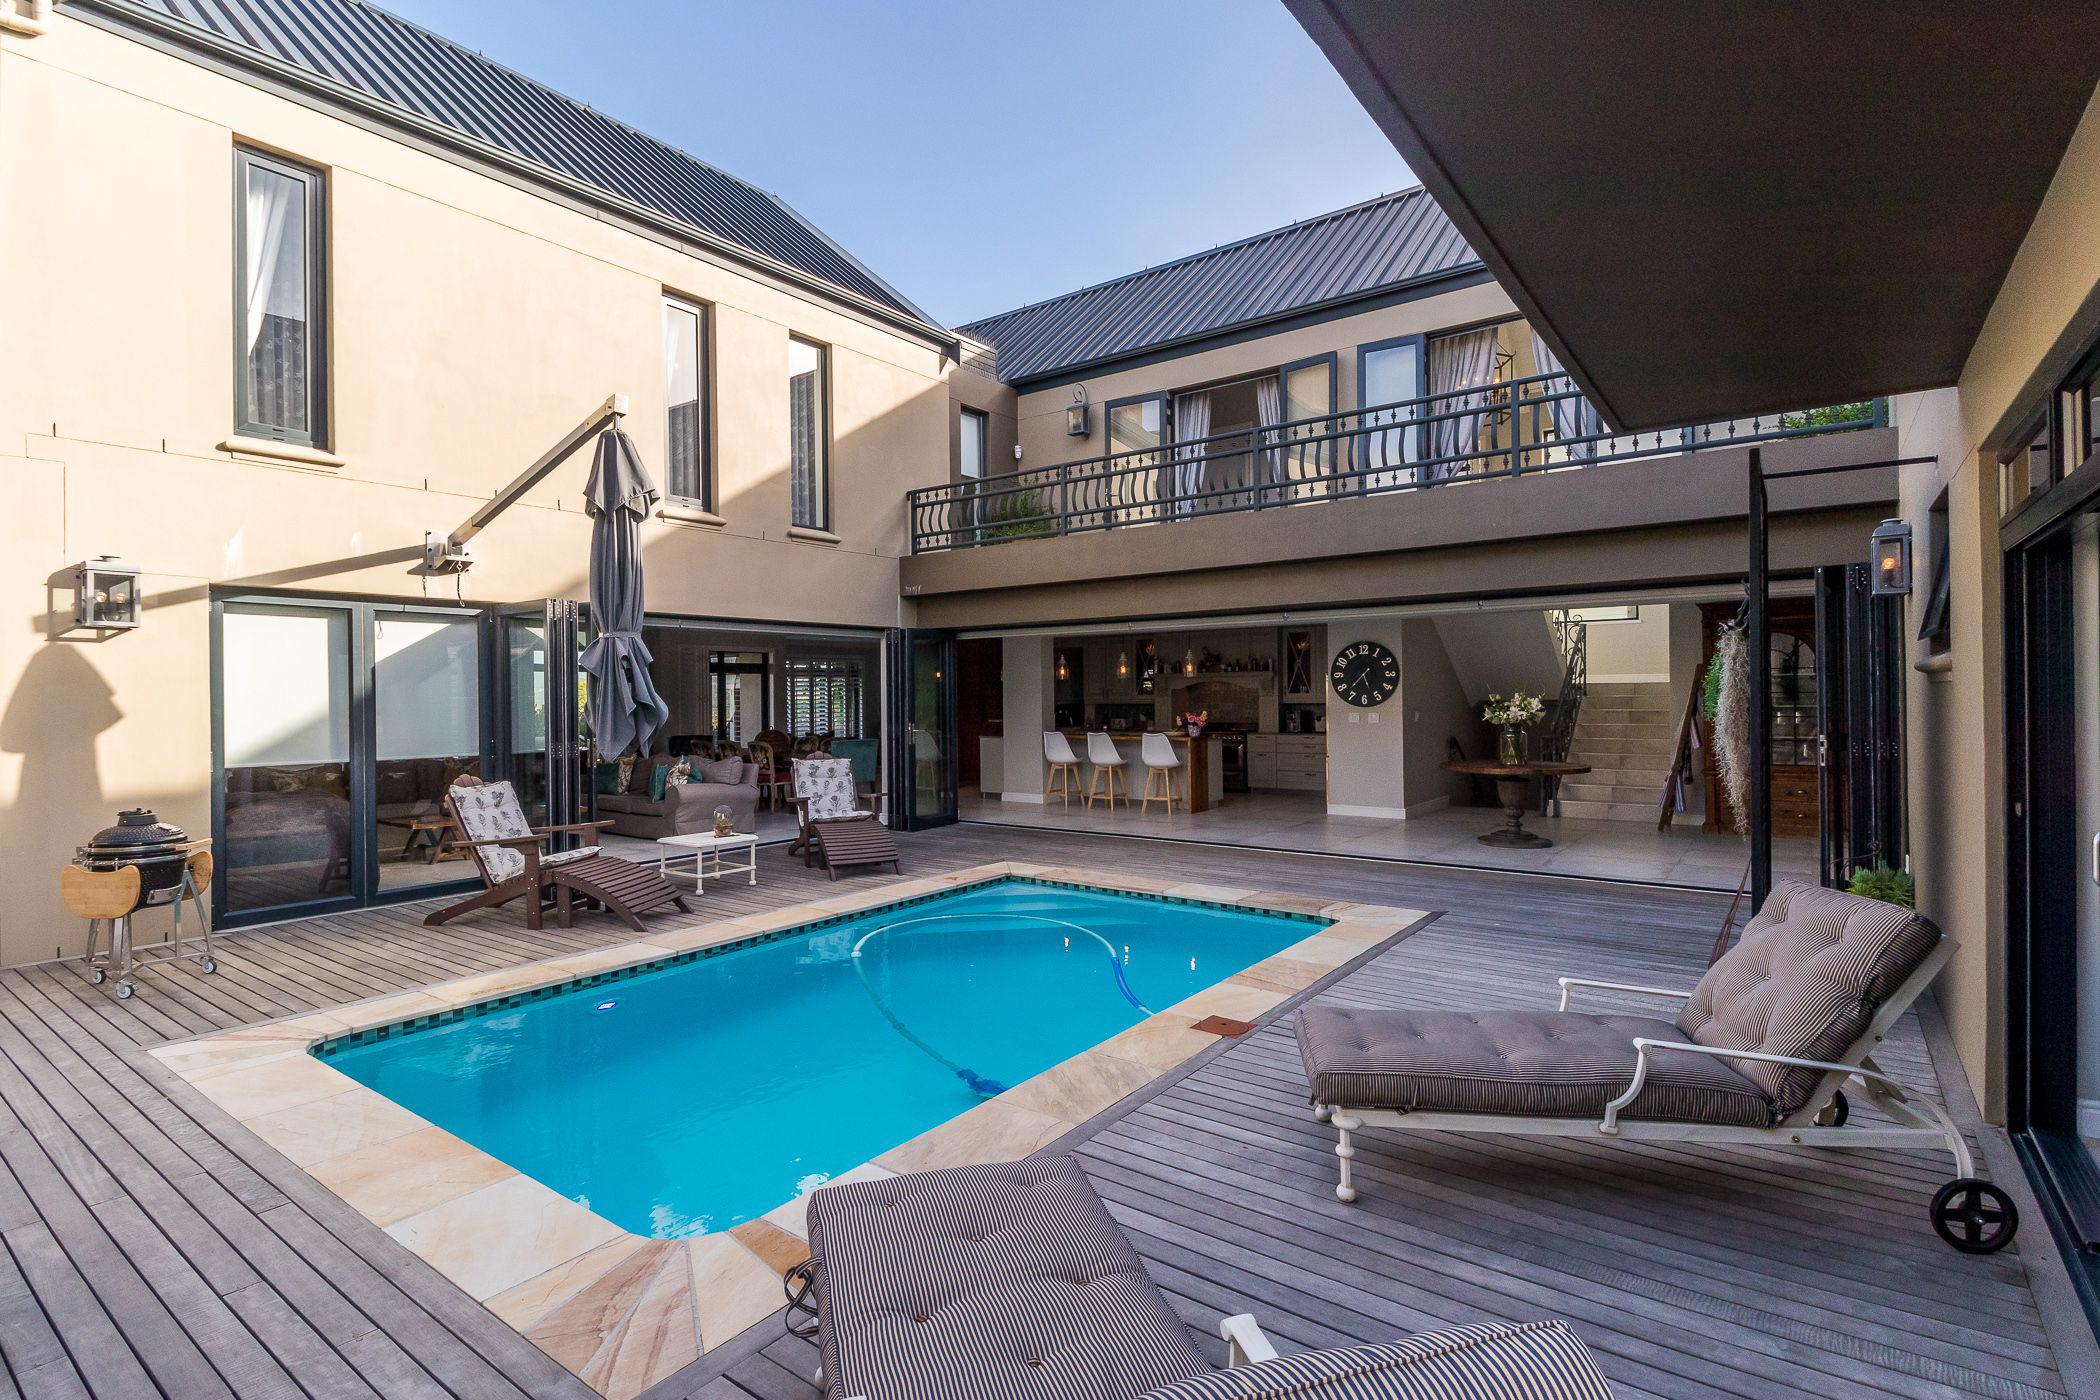 4 bedroom house for sale in Longlands Country Estate